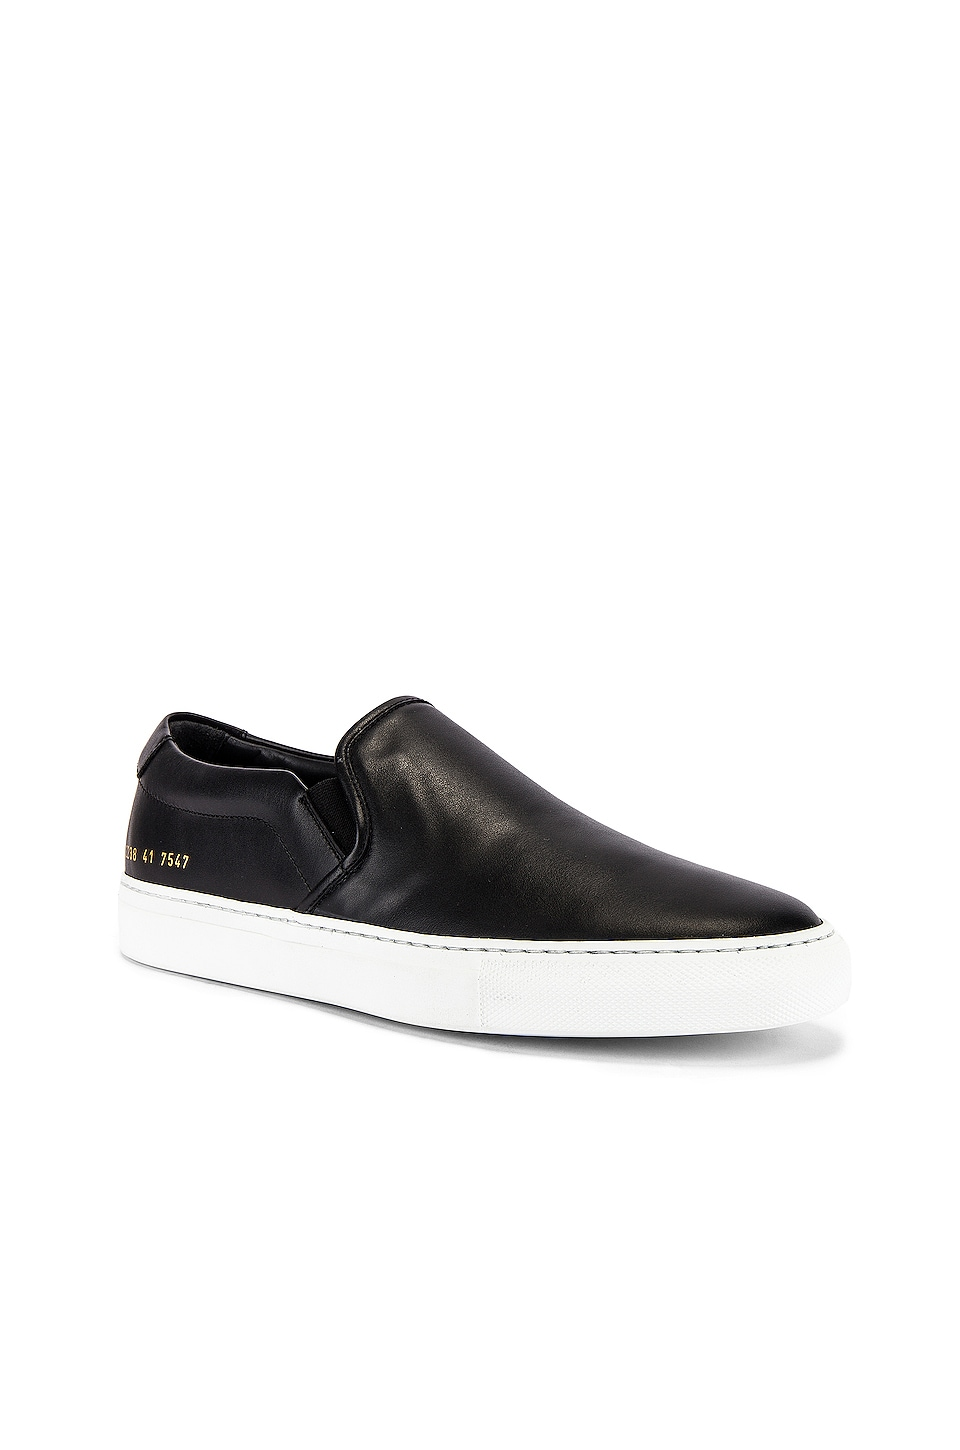 Common Projects Slip On in Black